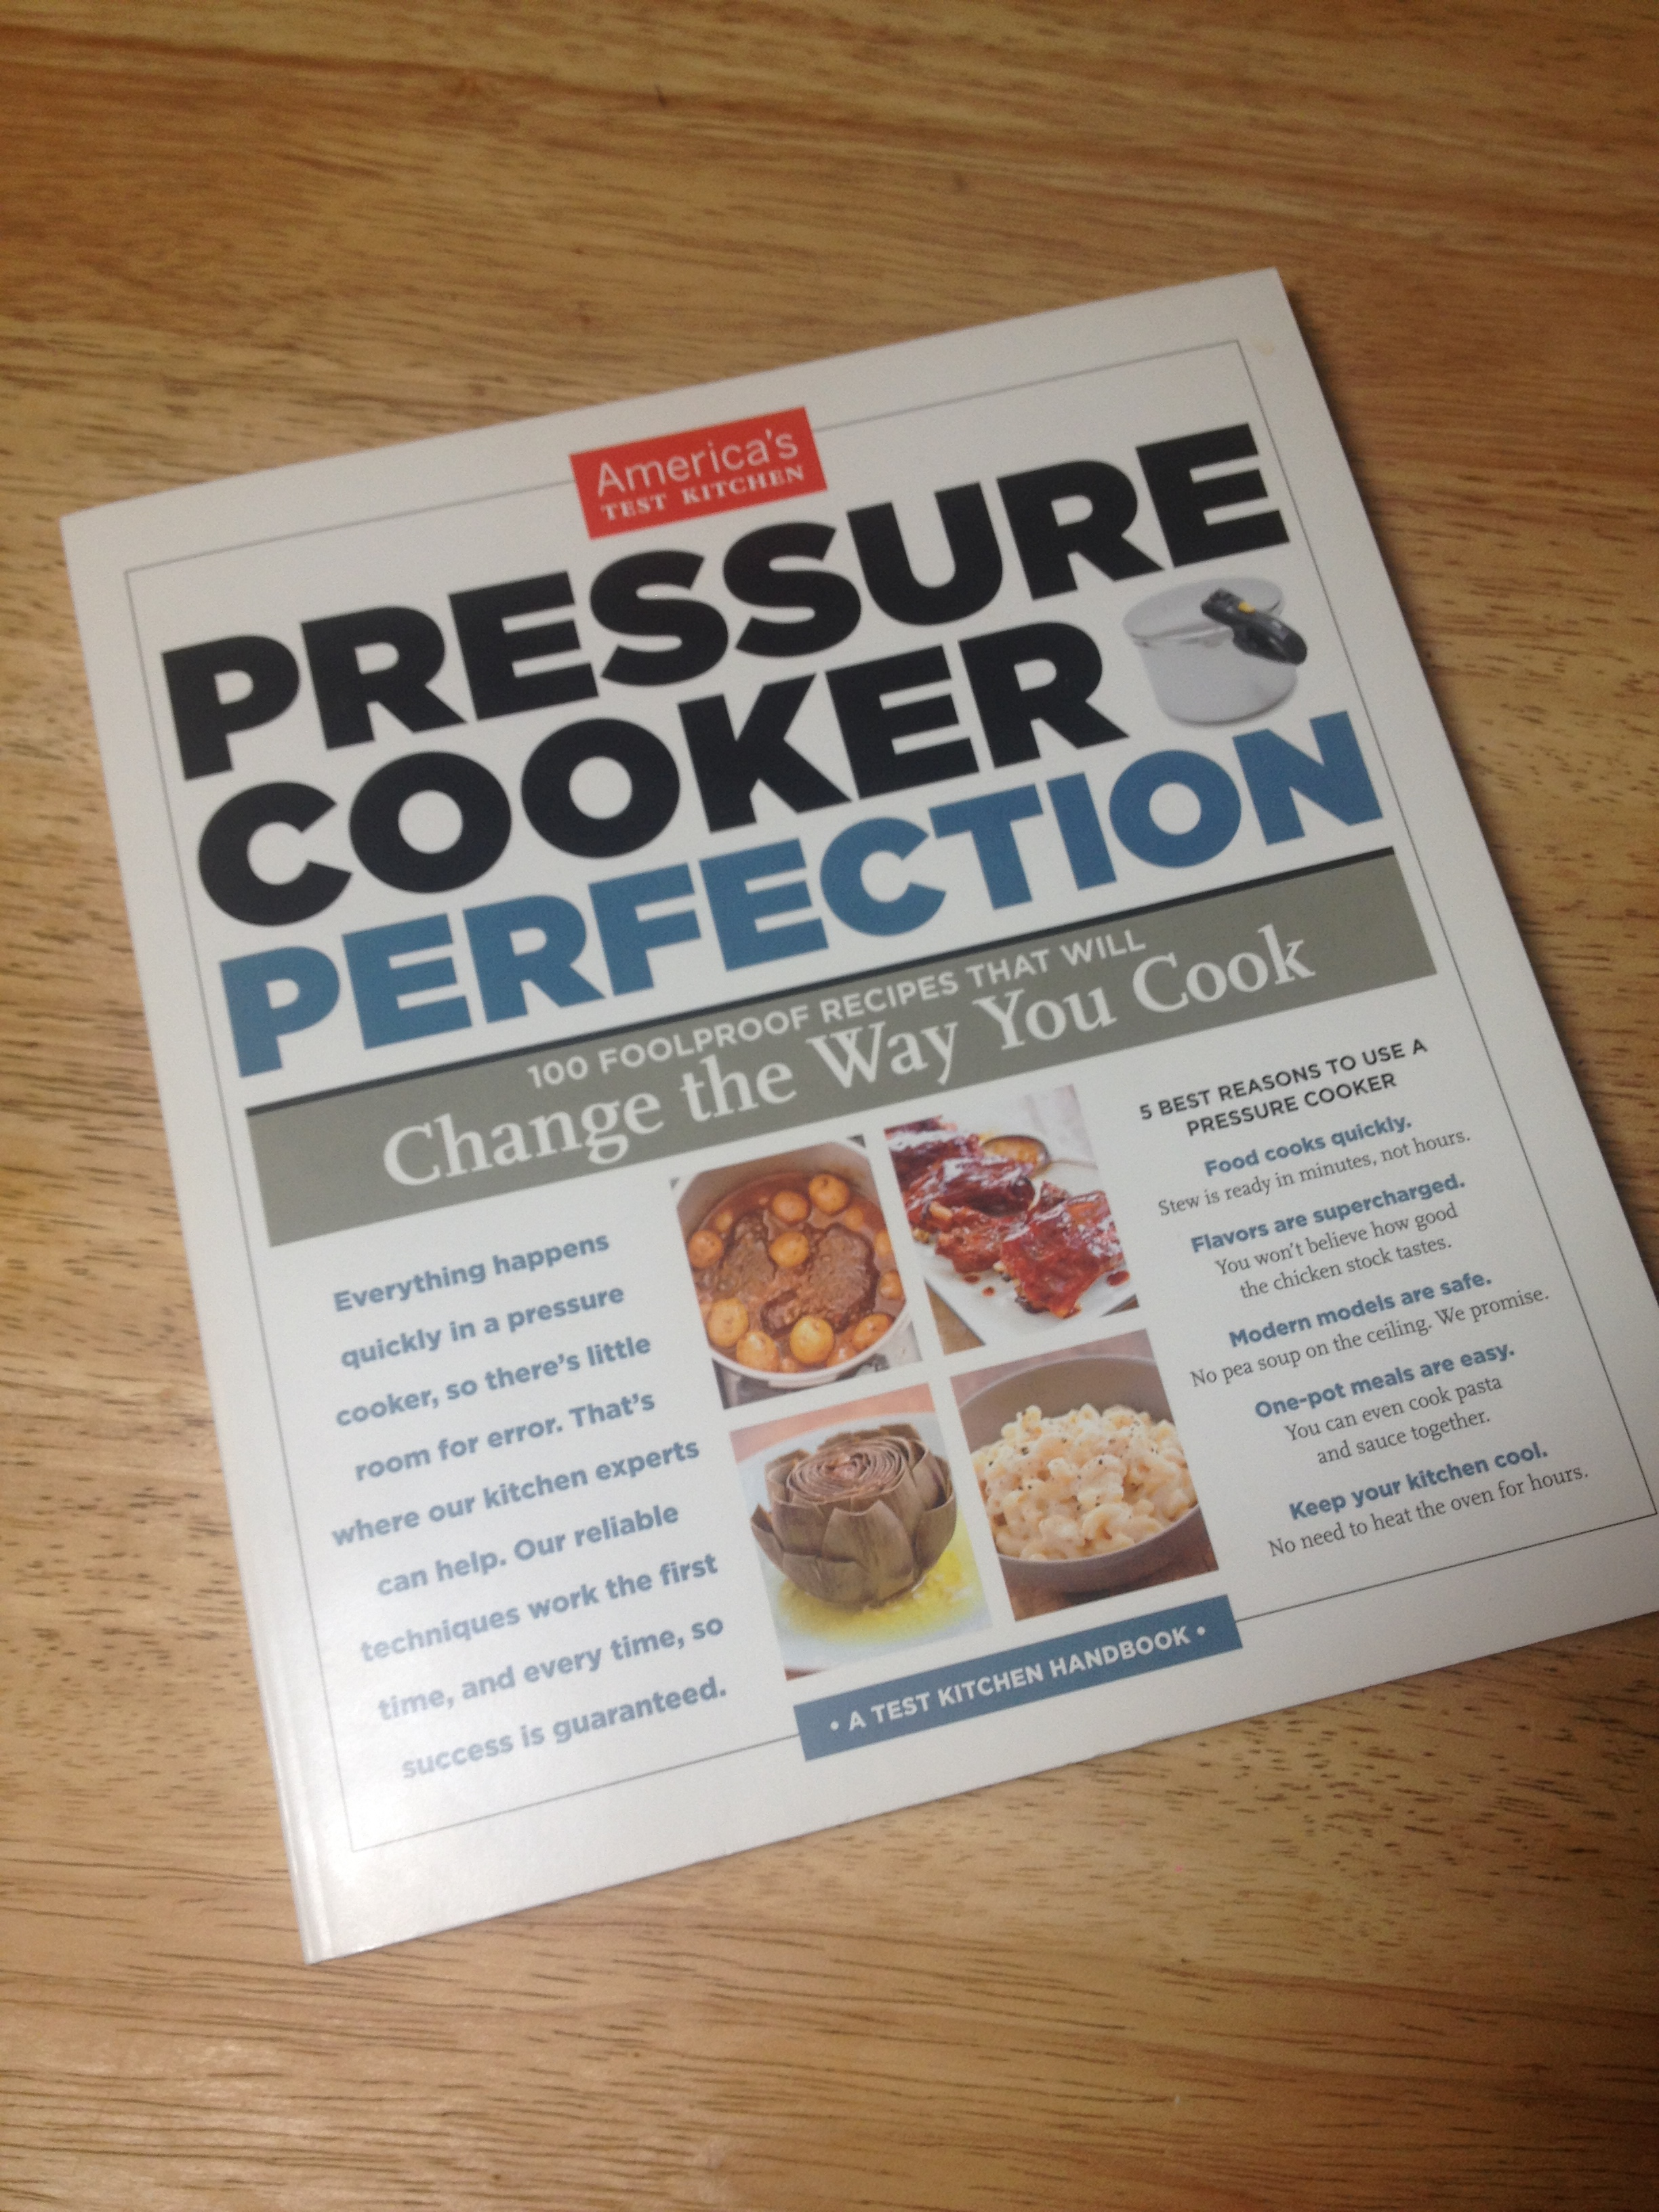 A must-have pressure cooker cookbook. Seriously.